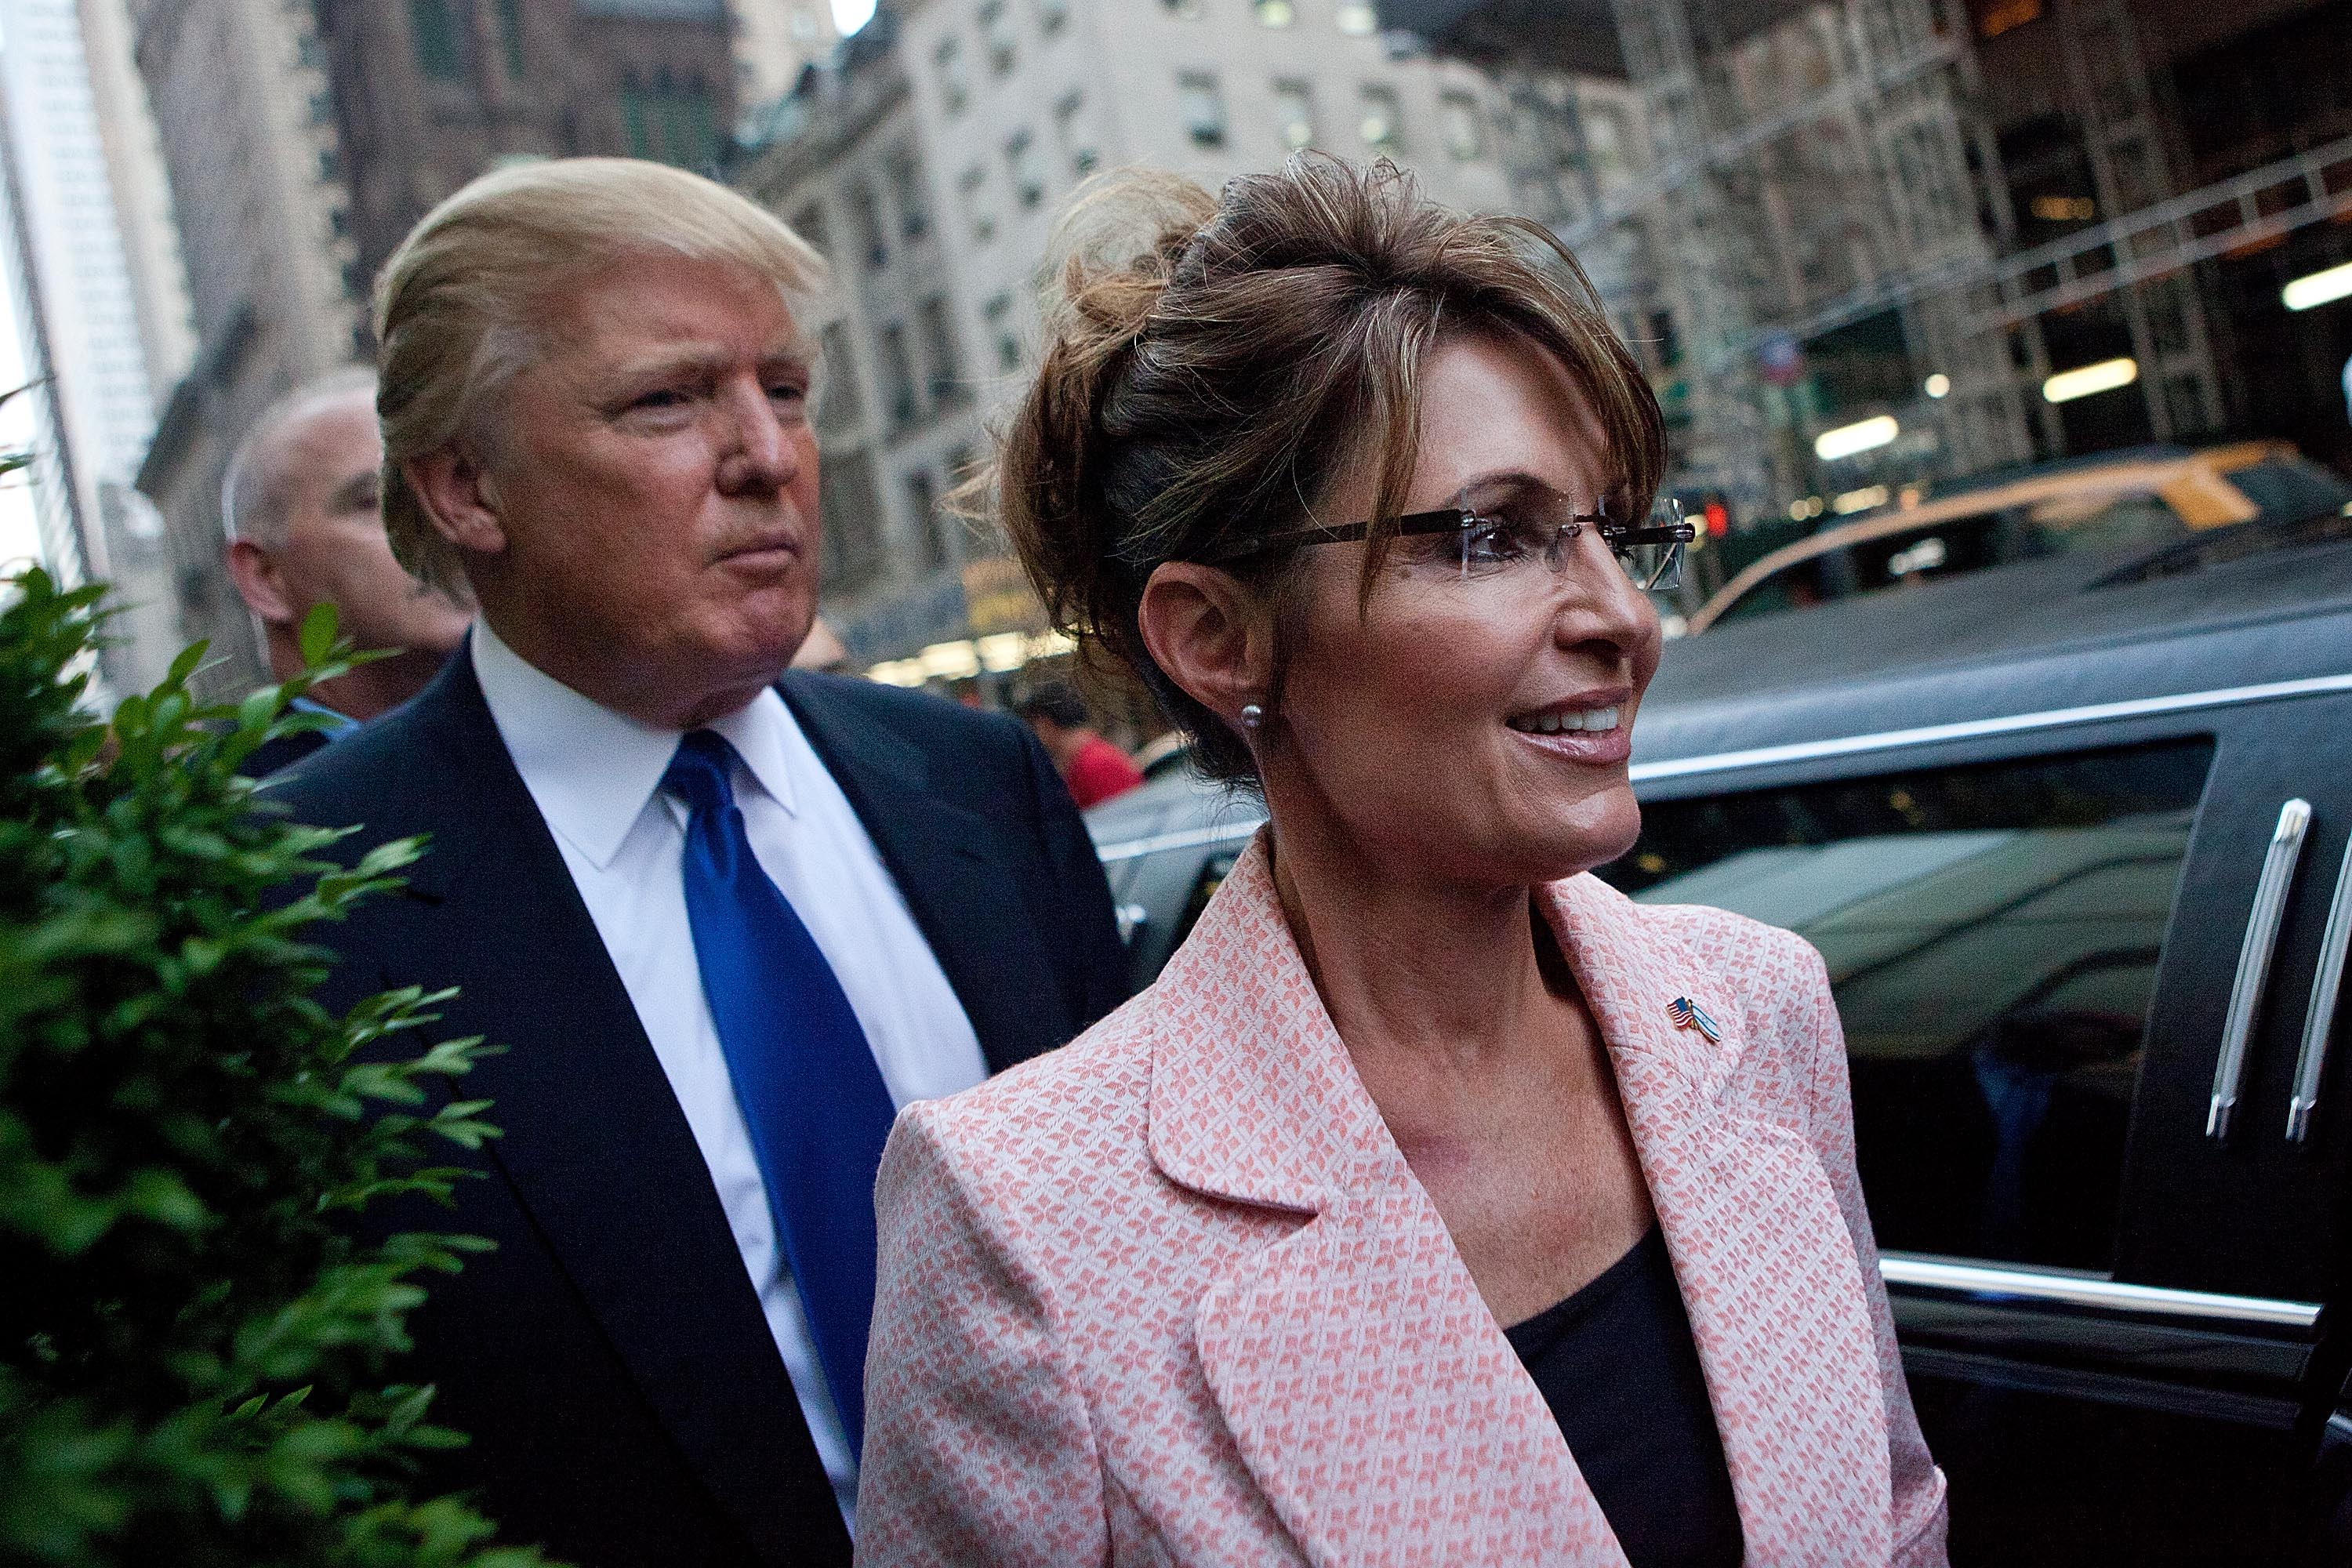 Former U.S. Vice presidential candidate and Alaska Governor Sarah Palin and Donald Trump walk towards a limo after leaving Trump Tower at 56th Street and 5th Avenue on May 31, 2011 in New York City.